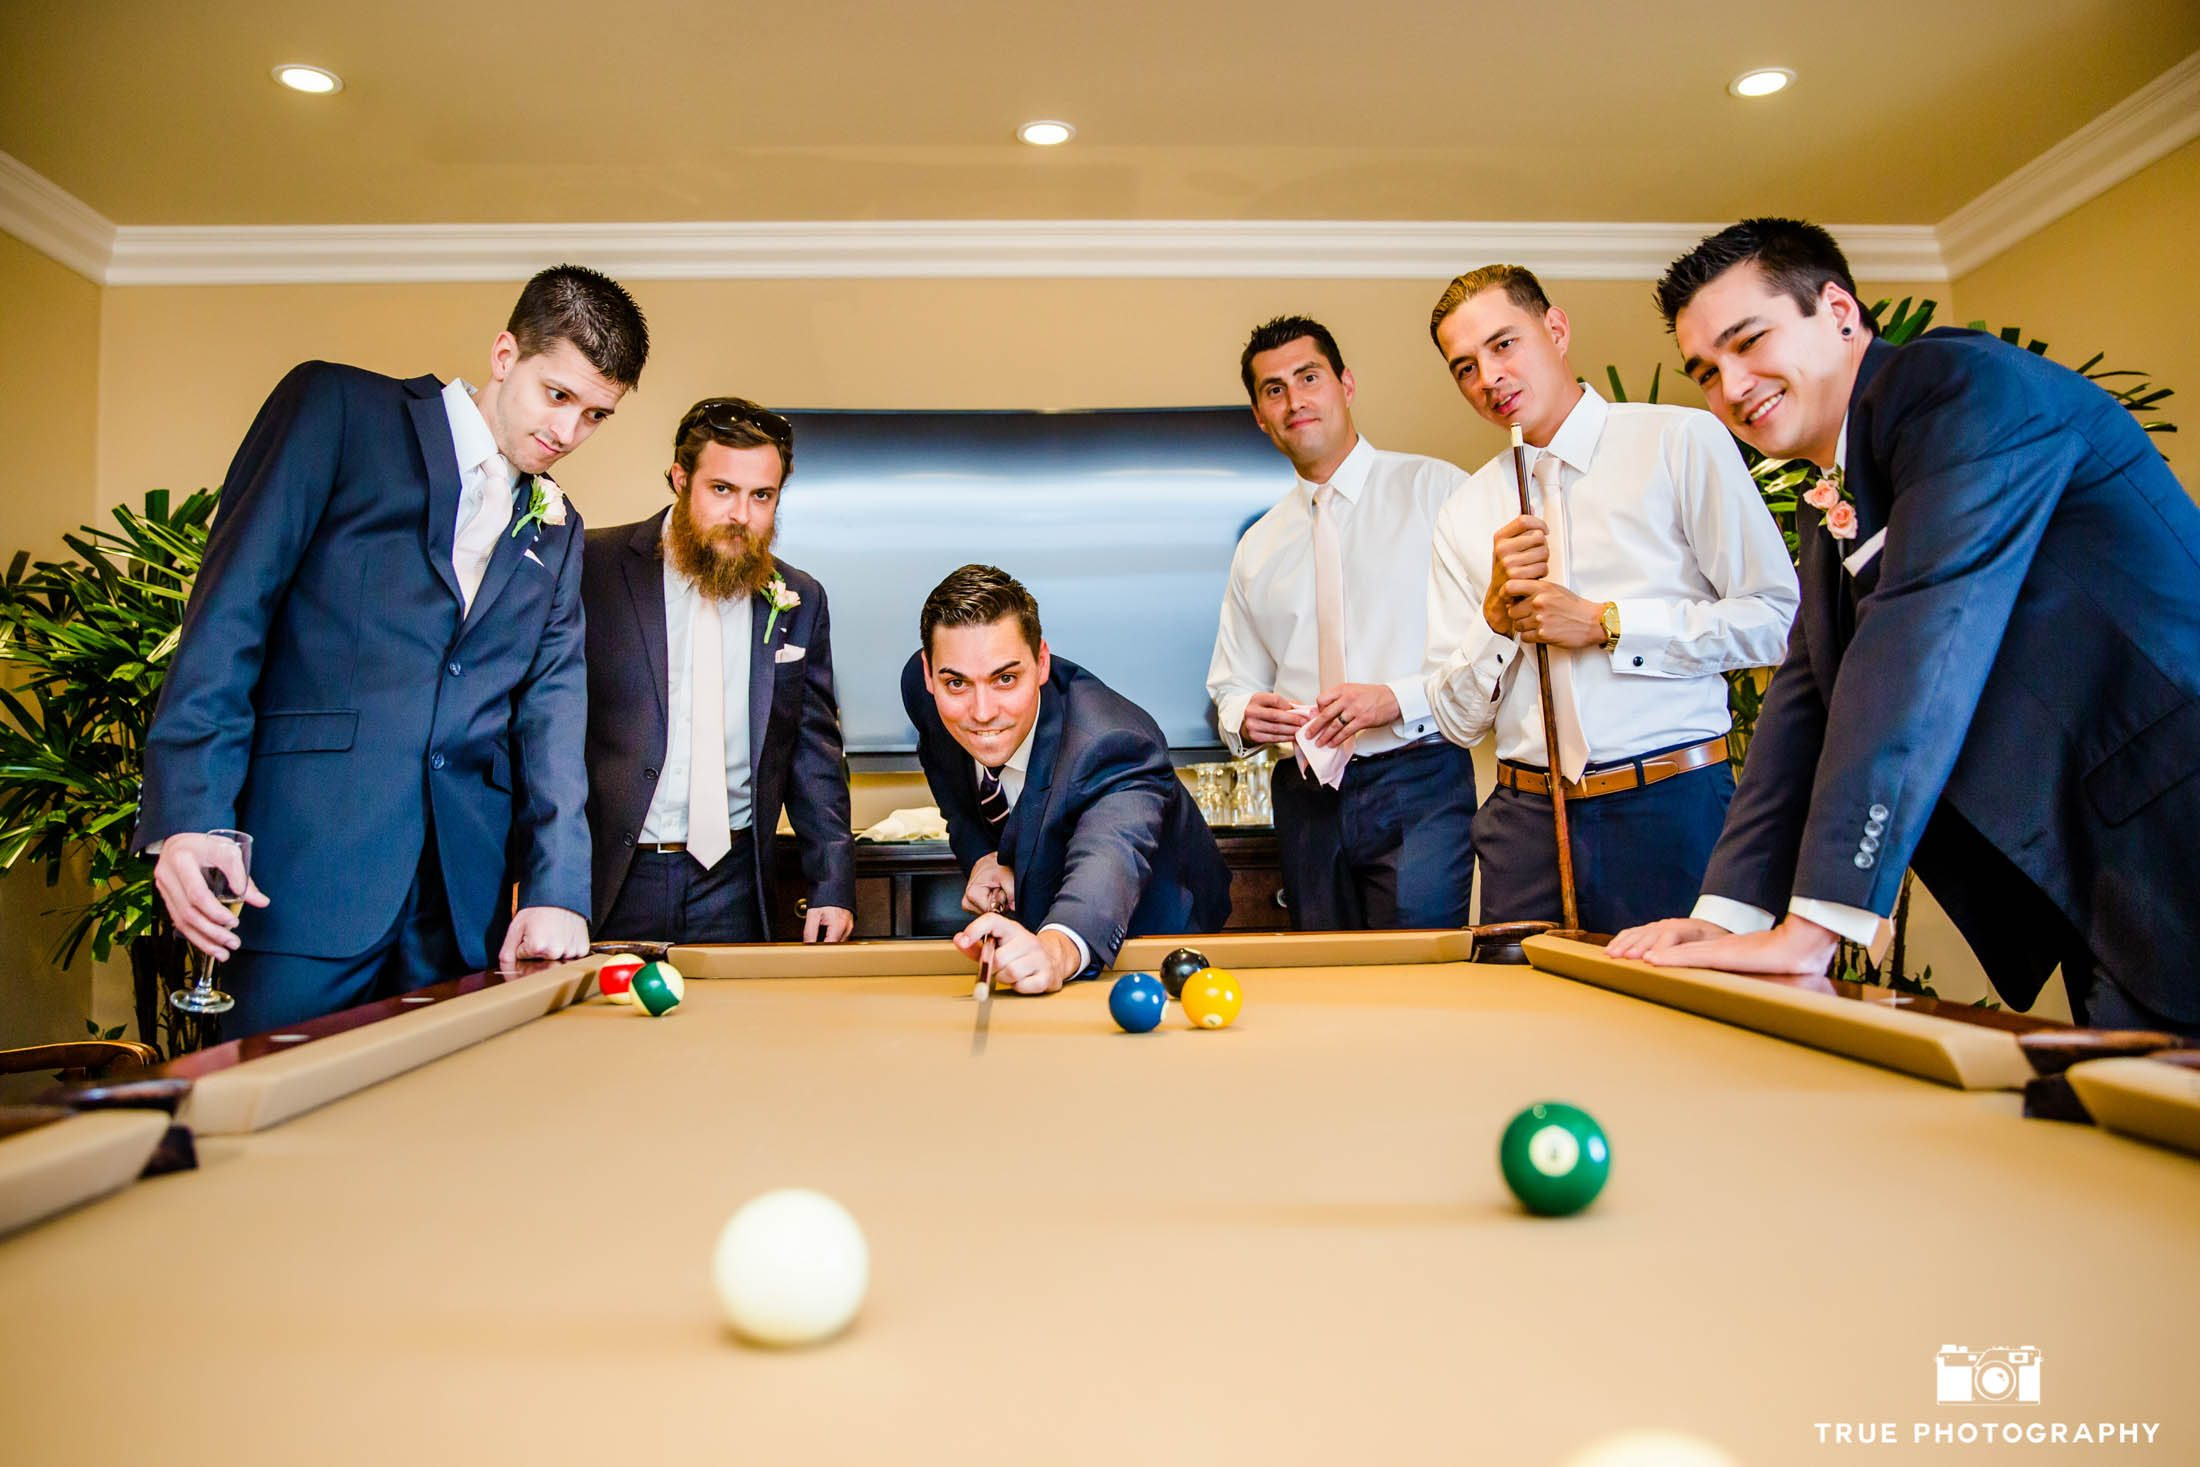 Groom with his groomsmen take some time to play some pool.